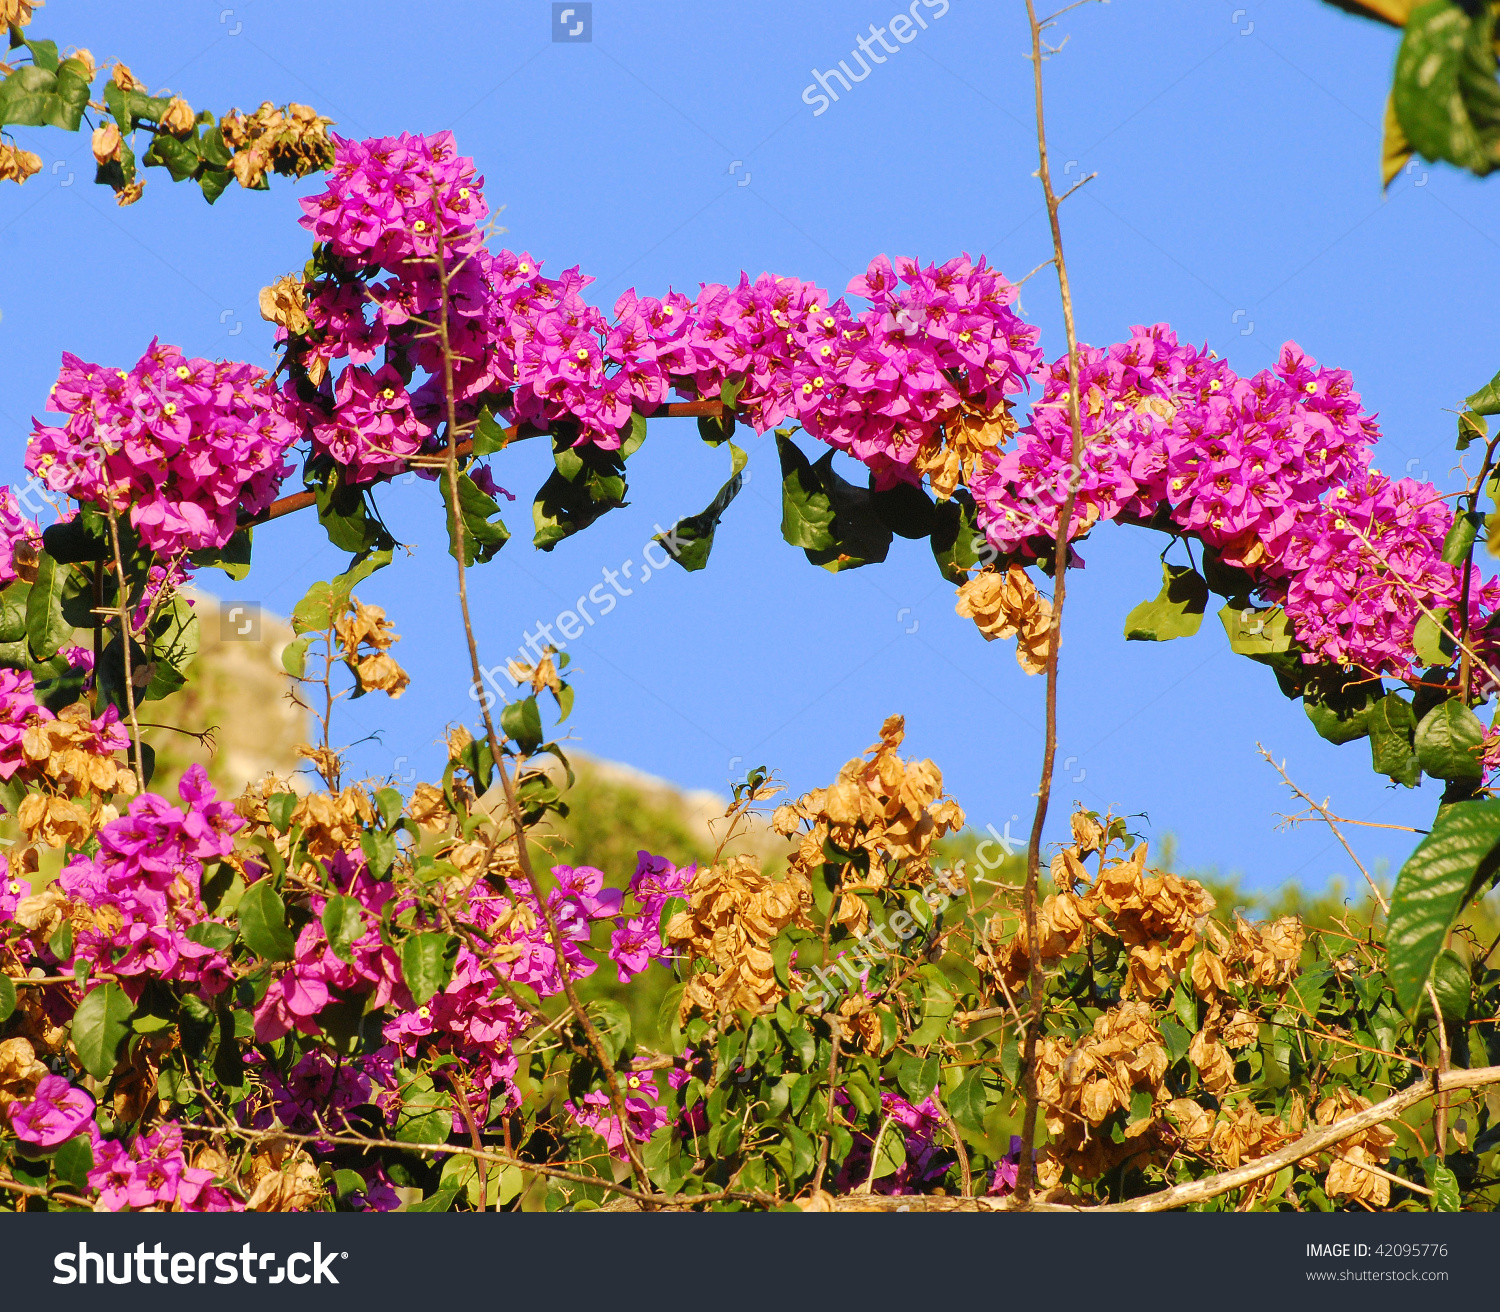 Bougainvillea Flowers Full Bloom Stock Photo 42095776.